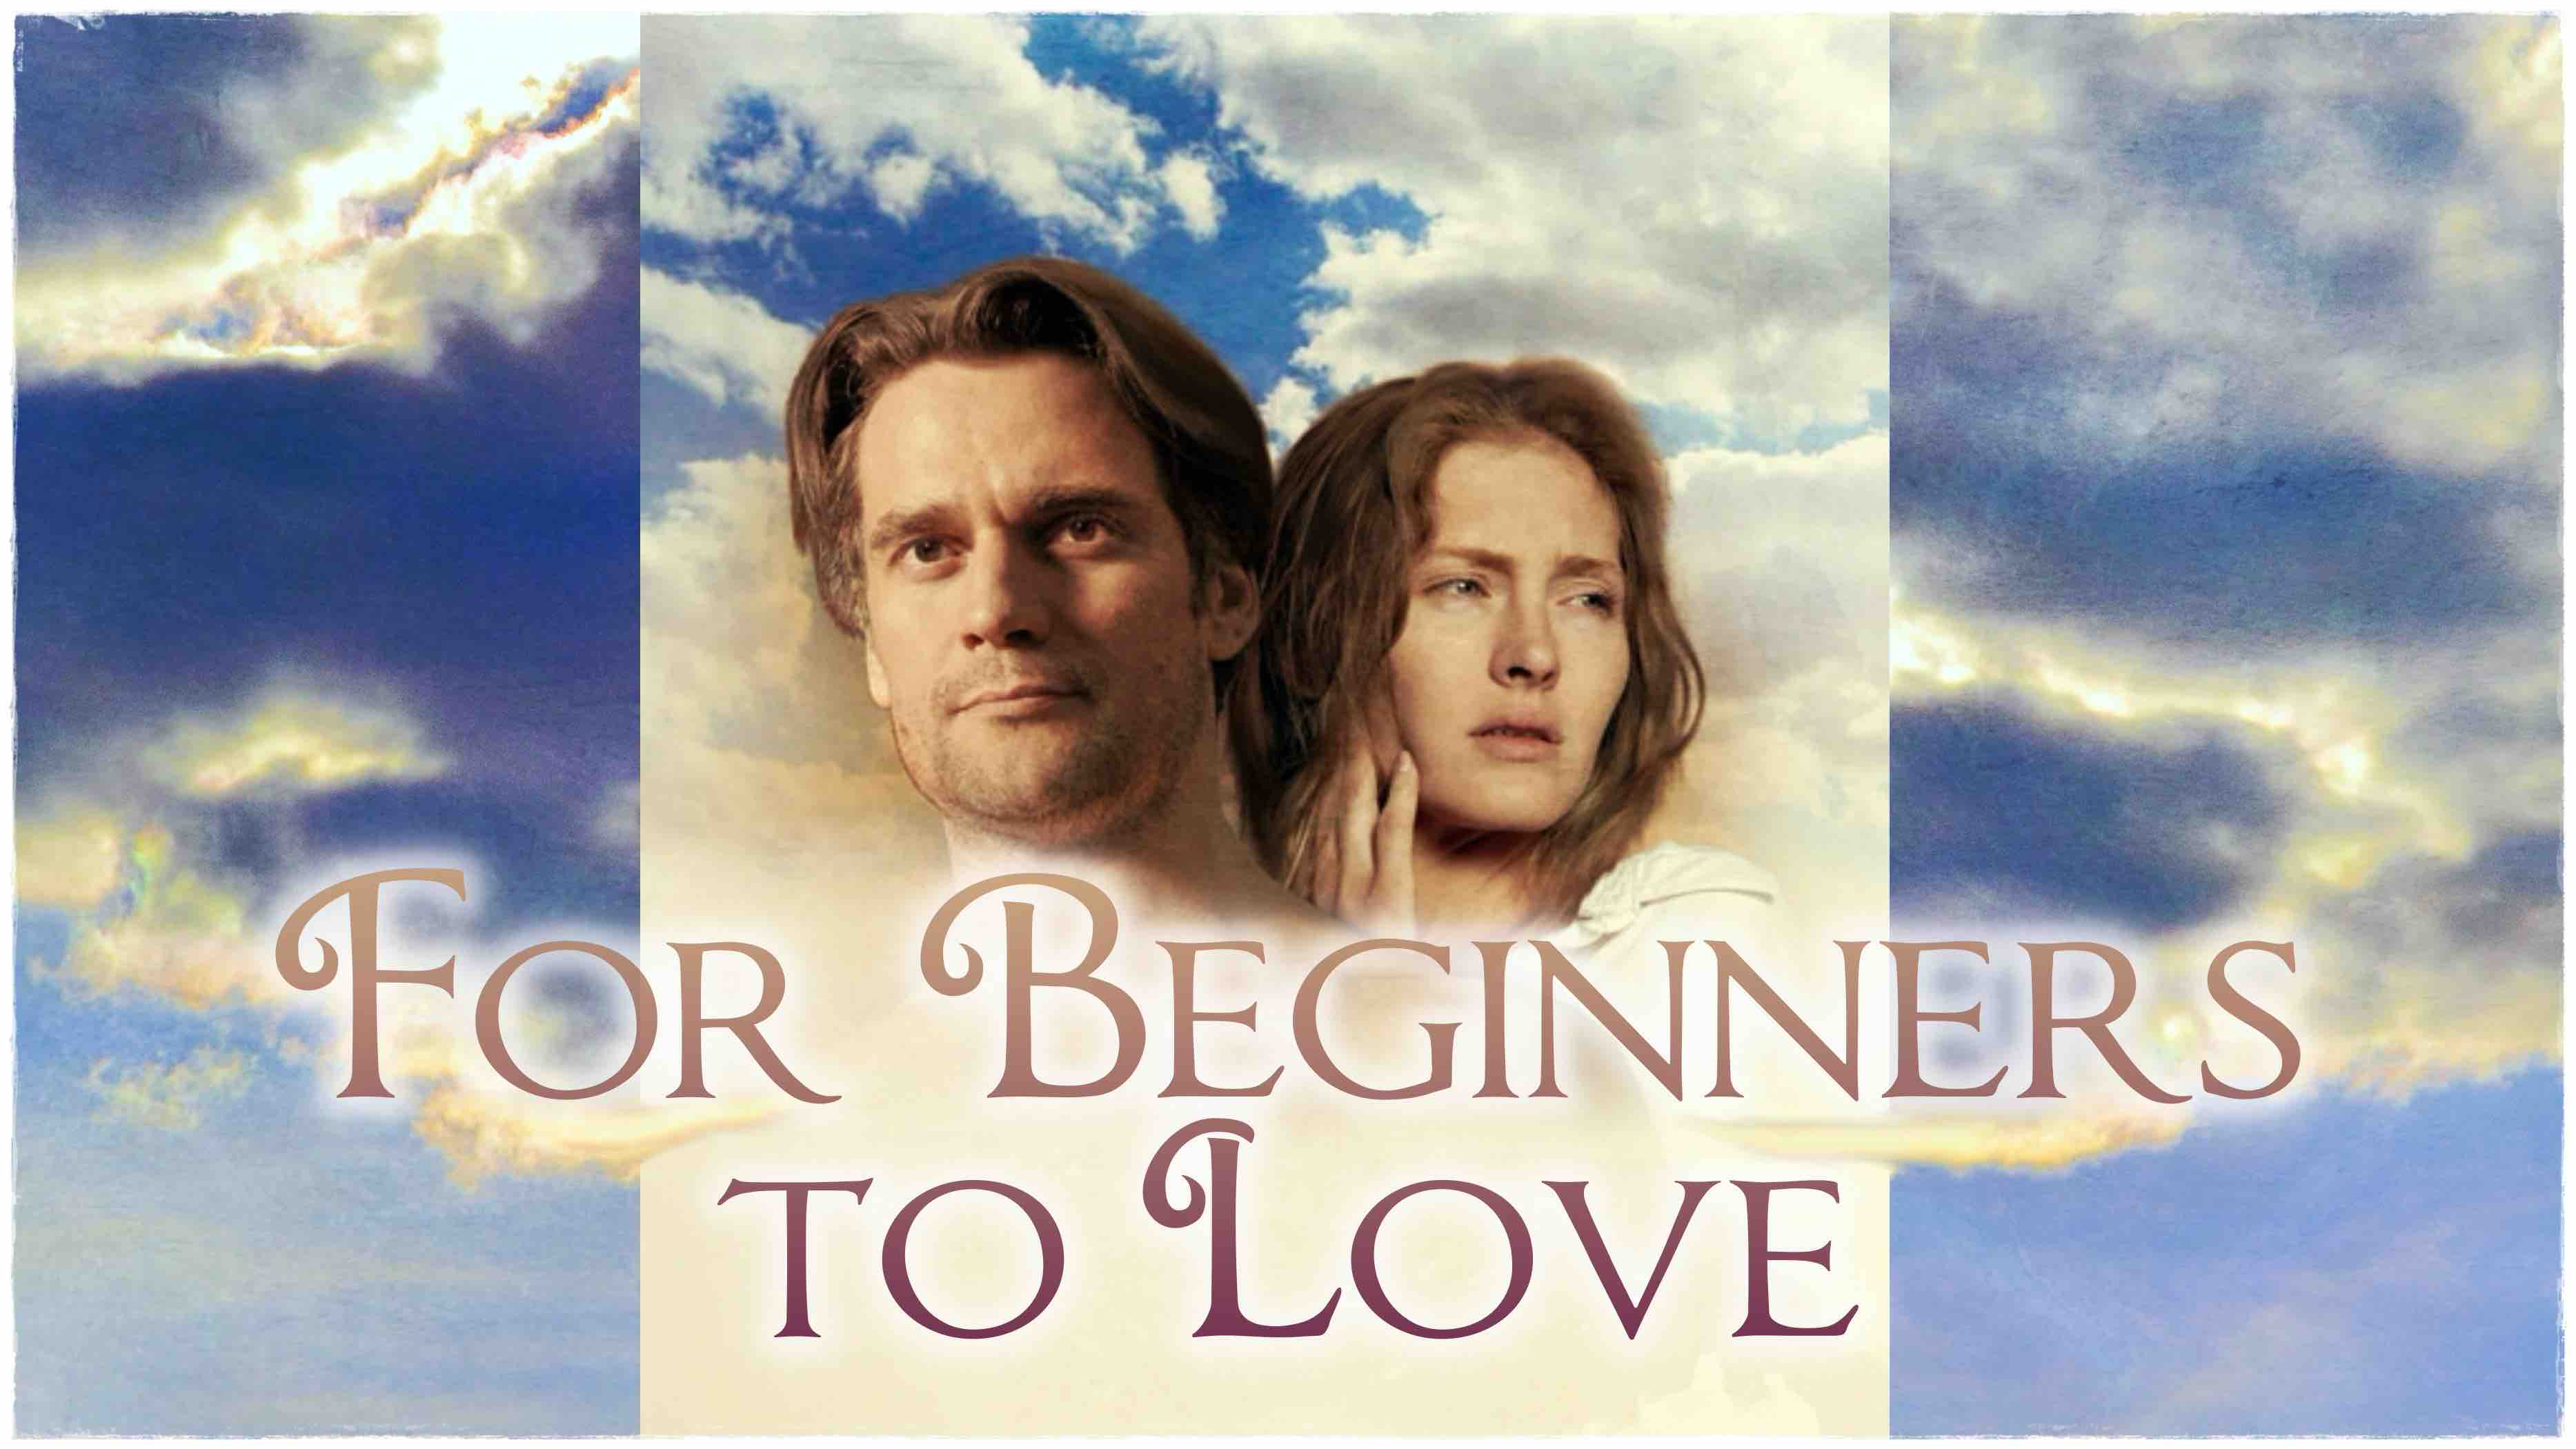 For Beginners to Love [2010]